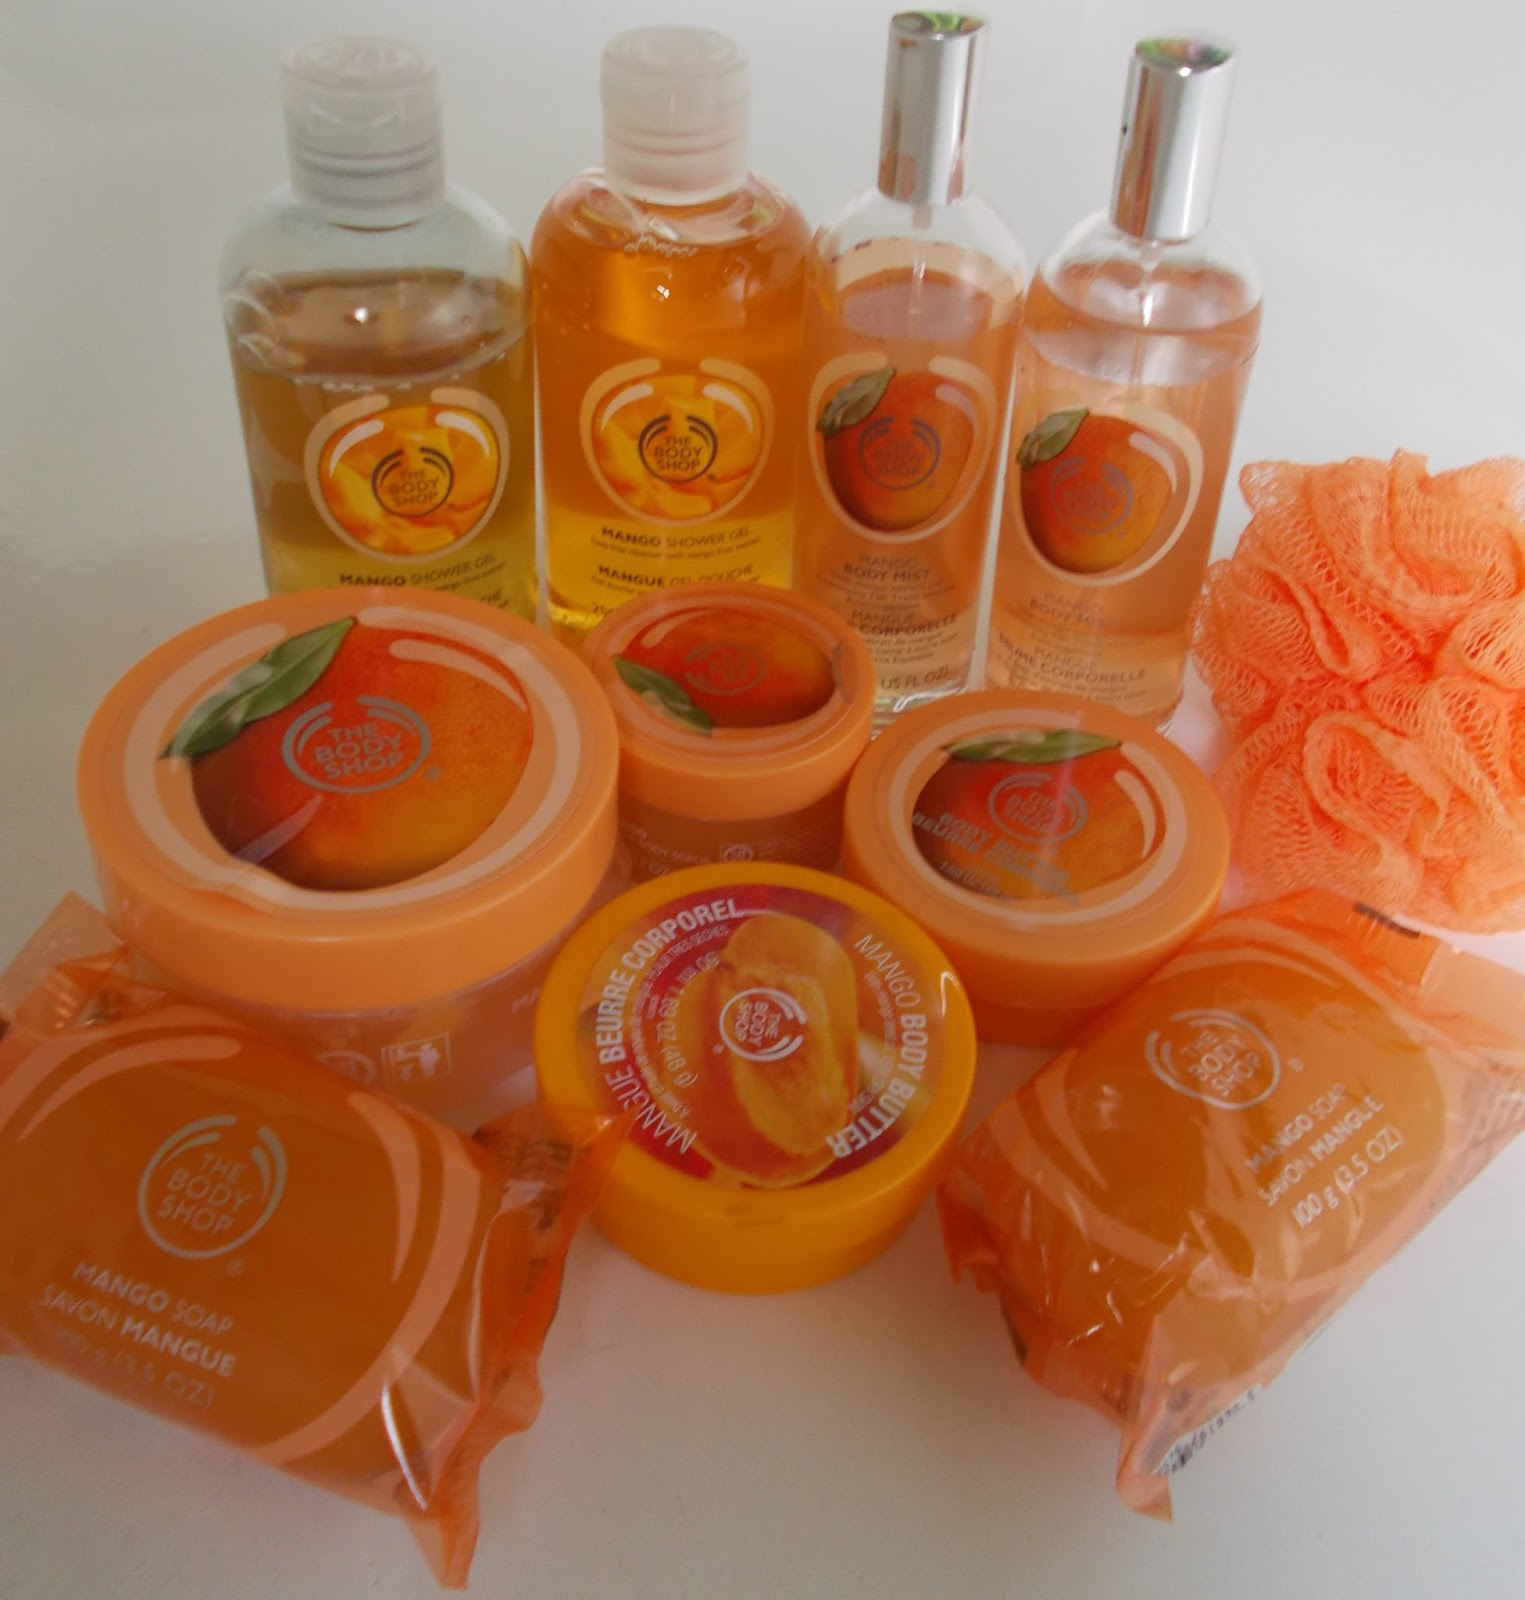 The Body Shop Mango Collection Shower Gel Soap Body Butter Lip Balm Sugar Scrub Butter Body Mist crinkle lily room spray cream